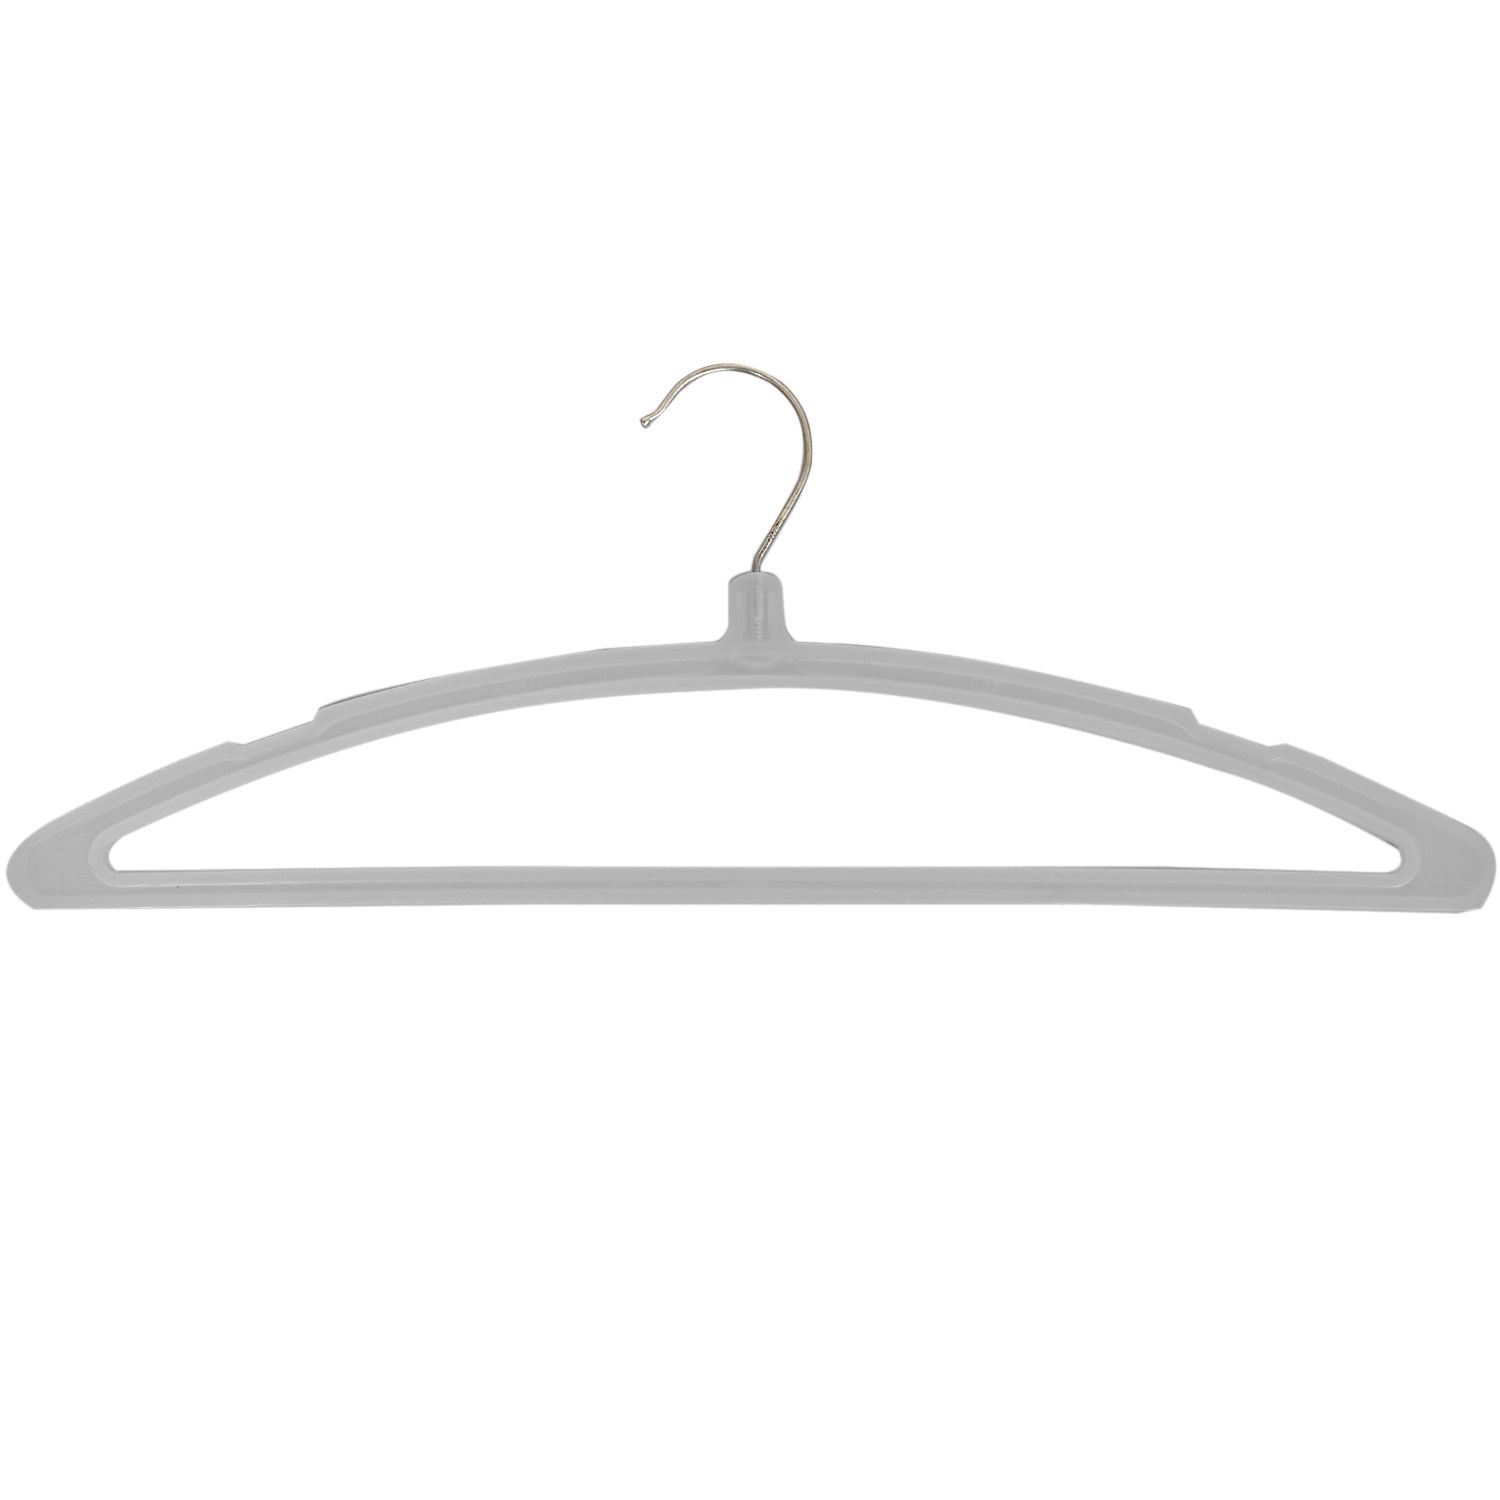 Kuber Industries Plastic Hanger For Suit,Cloth Set of 6 Pcs,Grey